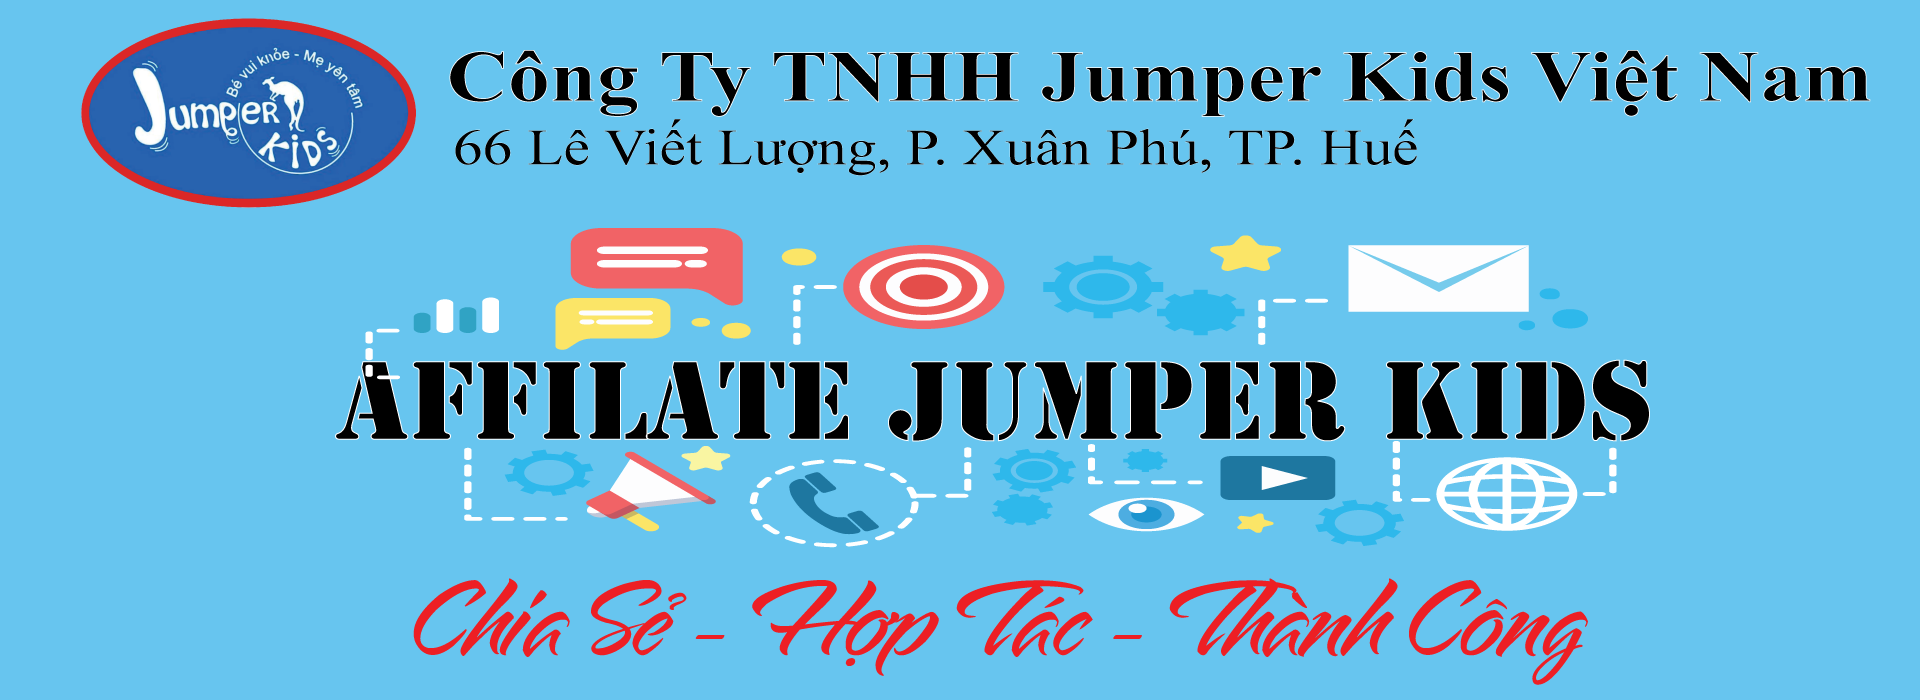 affilate jumper kids viet nam